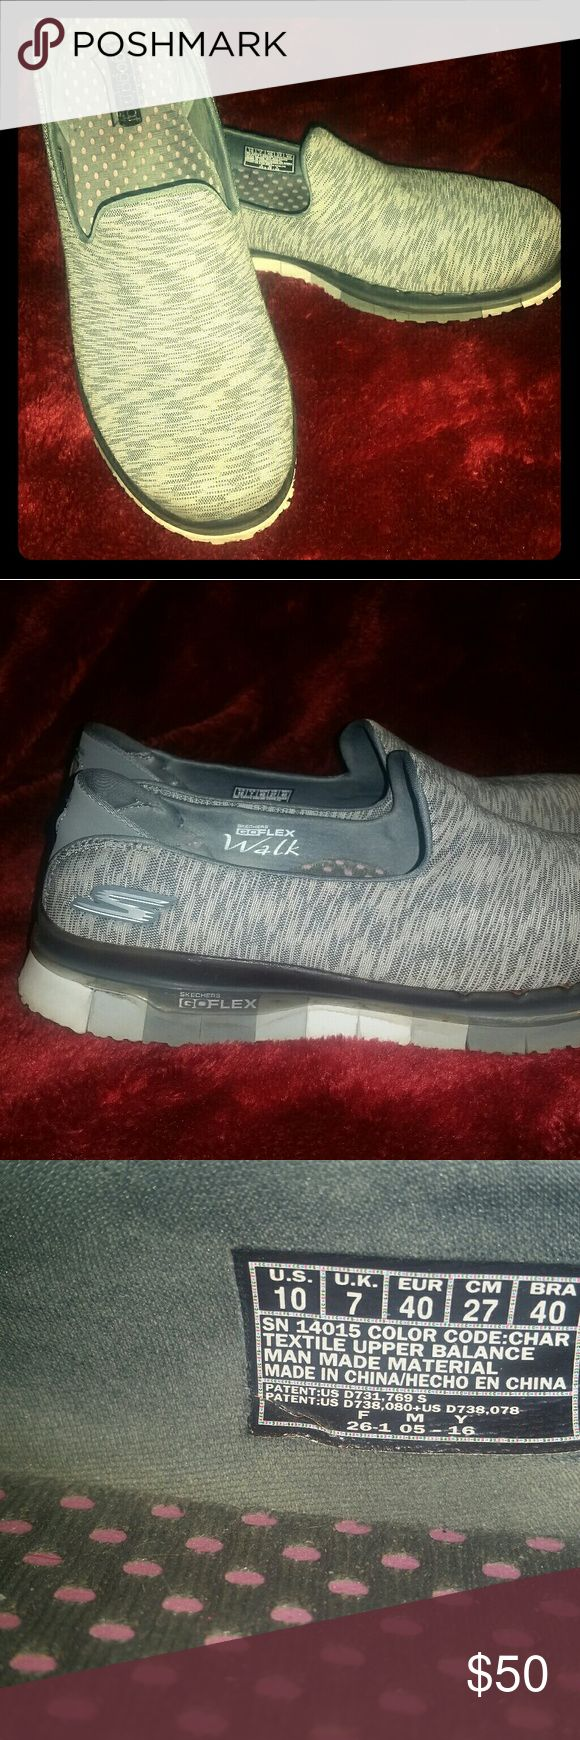 Sketchers Gofit Walking shoes Excellent condition only worn 1 time Shoes Sneakers